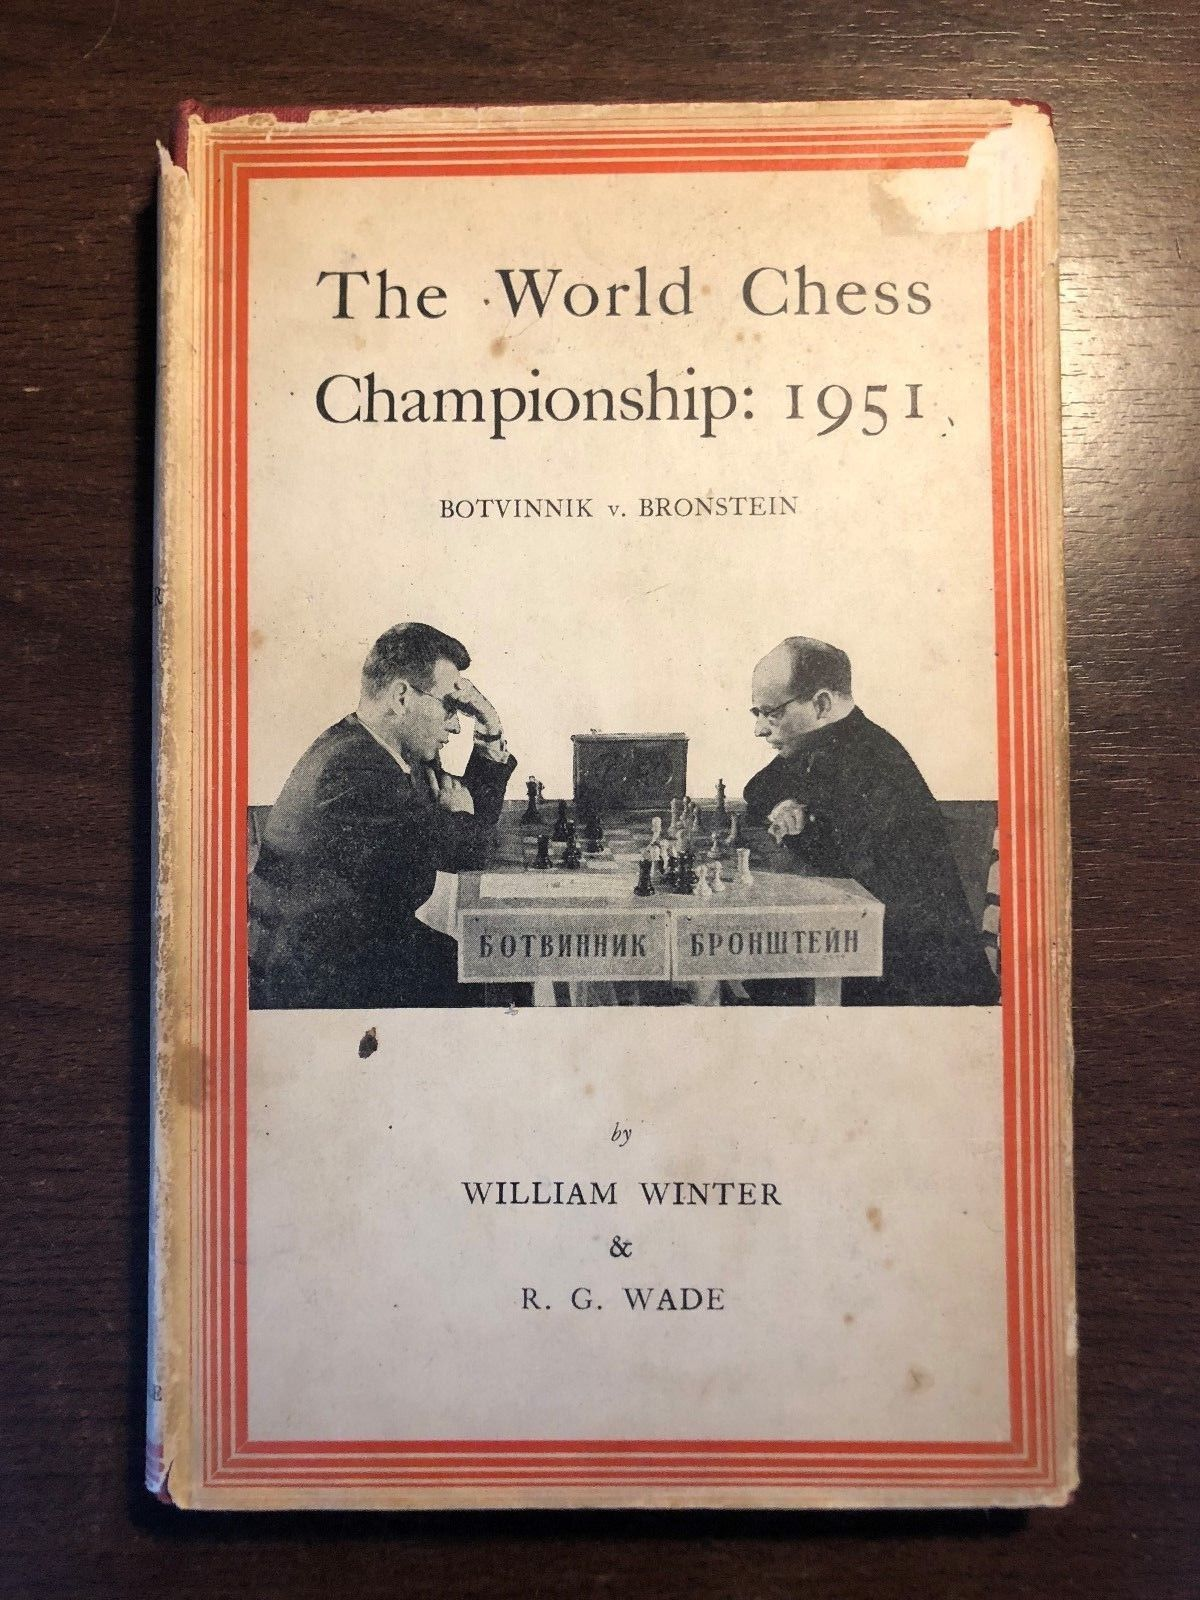 The World Chess Championship, W.Winter & RG Wade, Turnstille Press, 1951